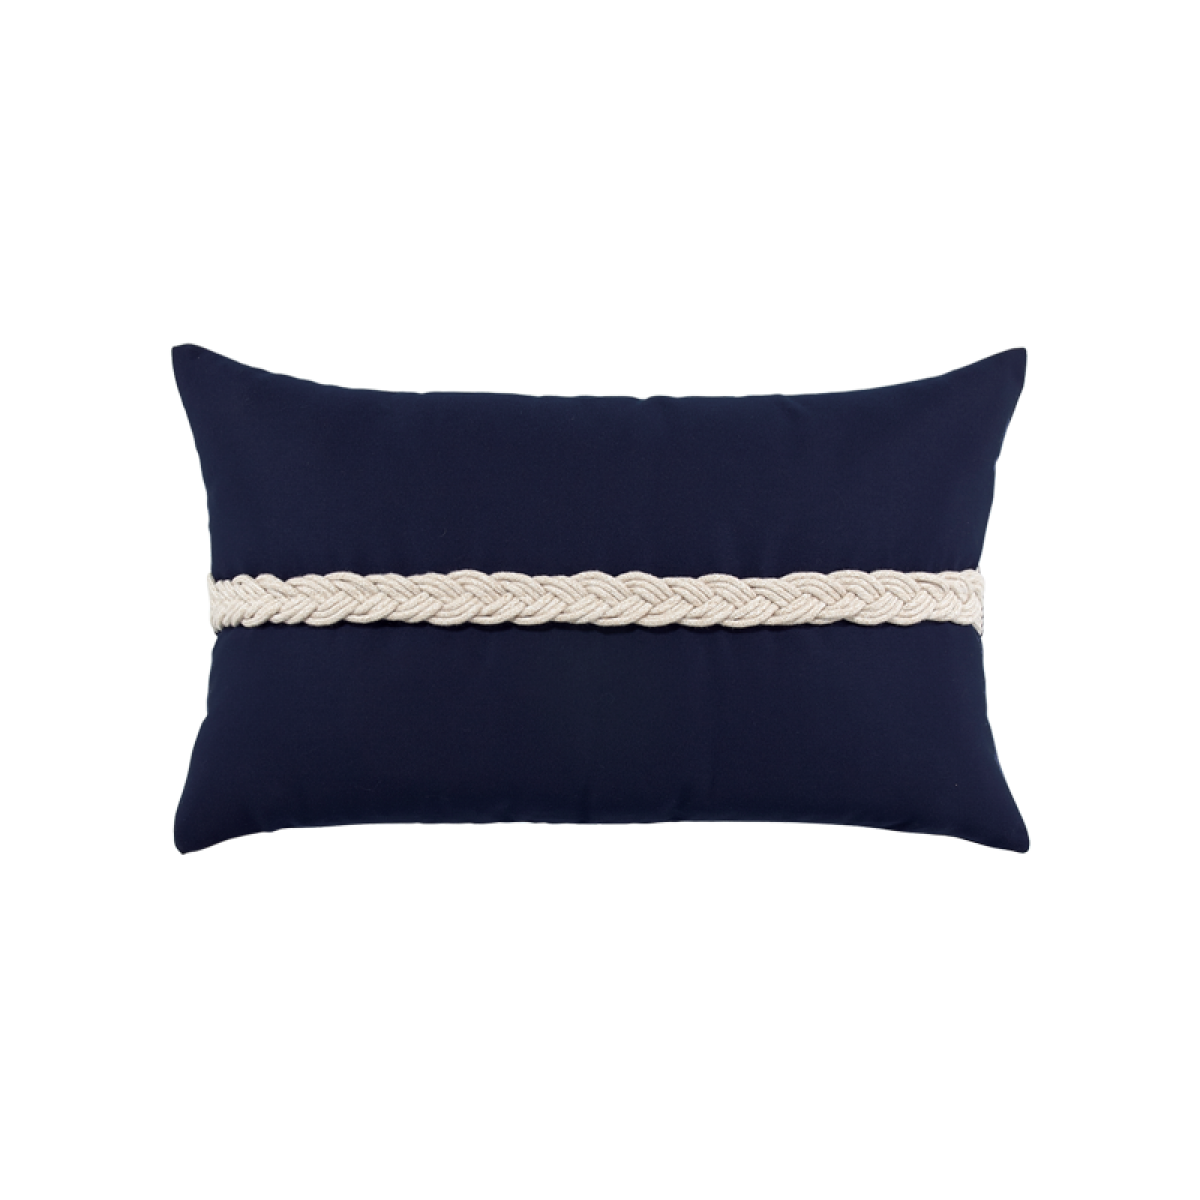 Navy Braided Lumbar - SALE 30% off - Limited Quantities Available